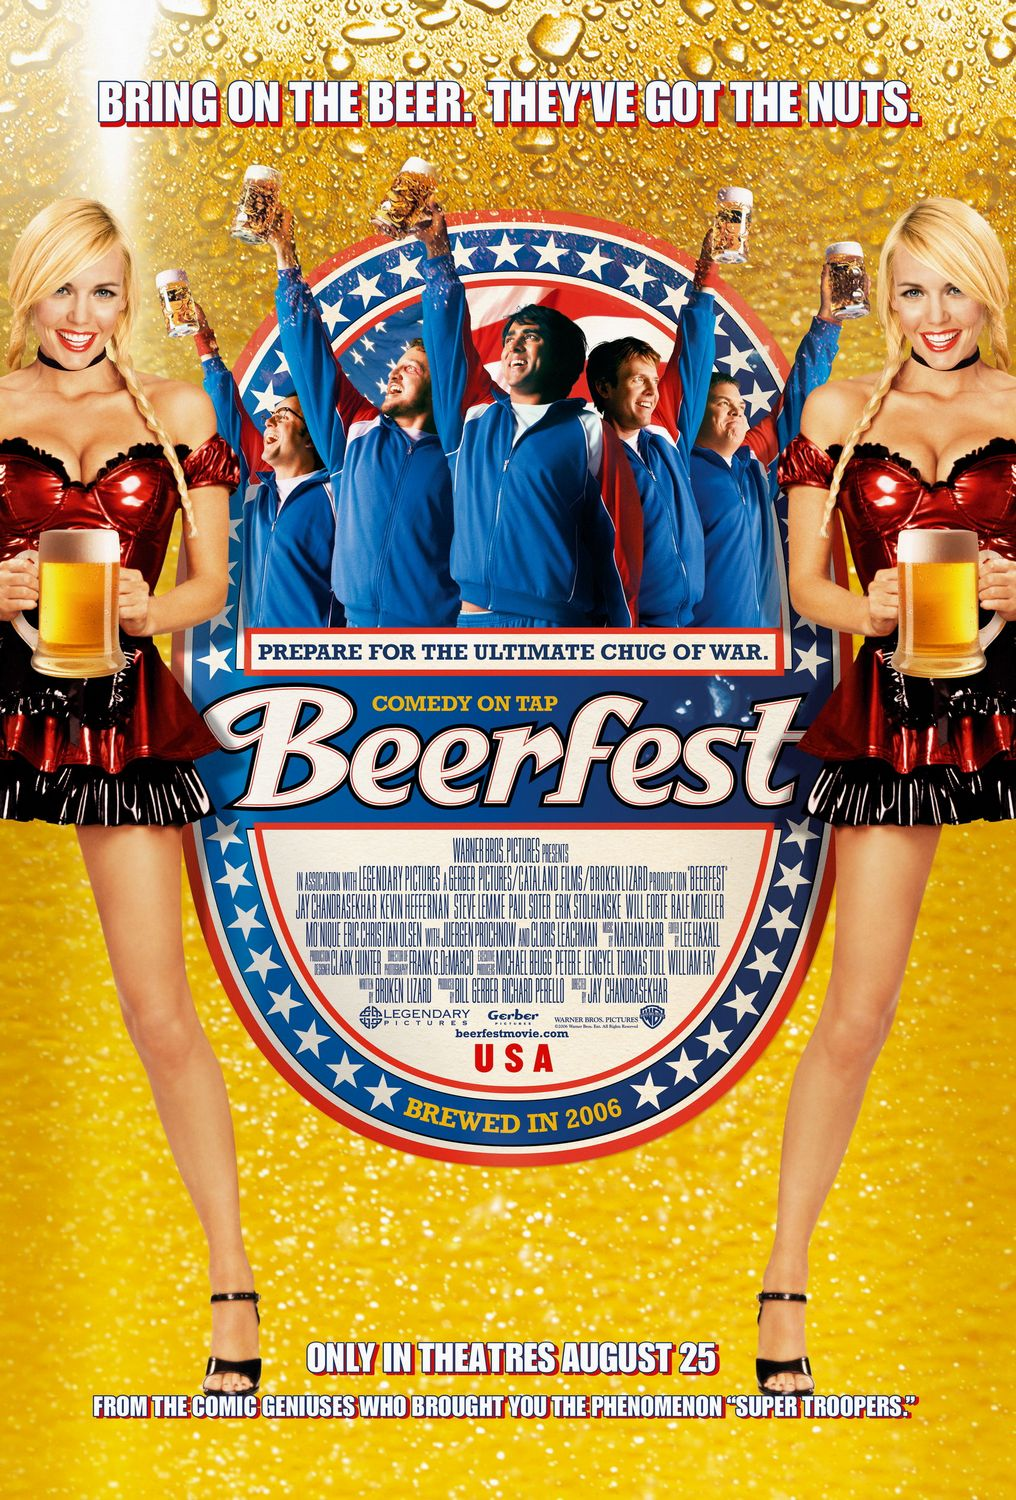 Beerfest is a complex, multi layered film that defies easy analysis.